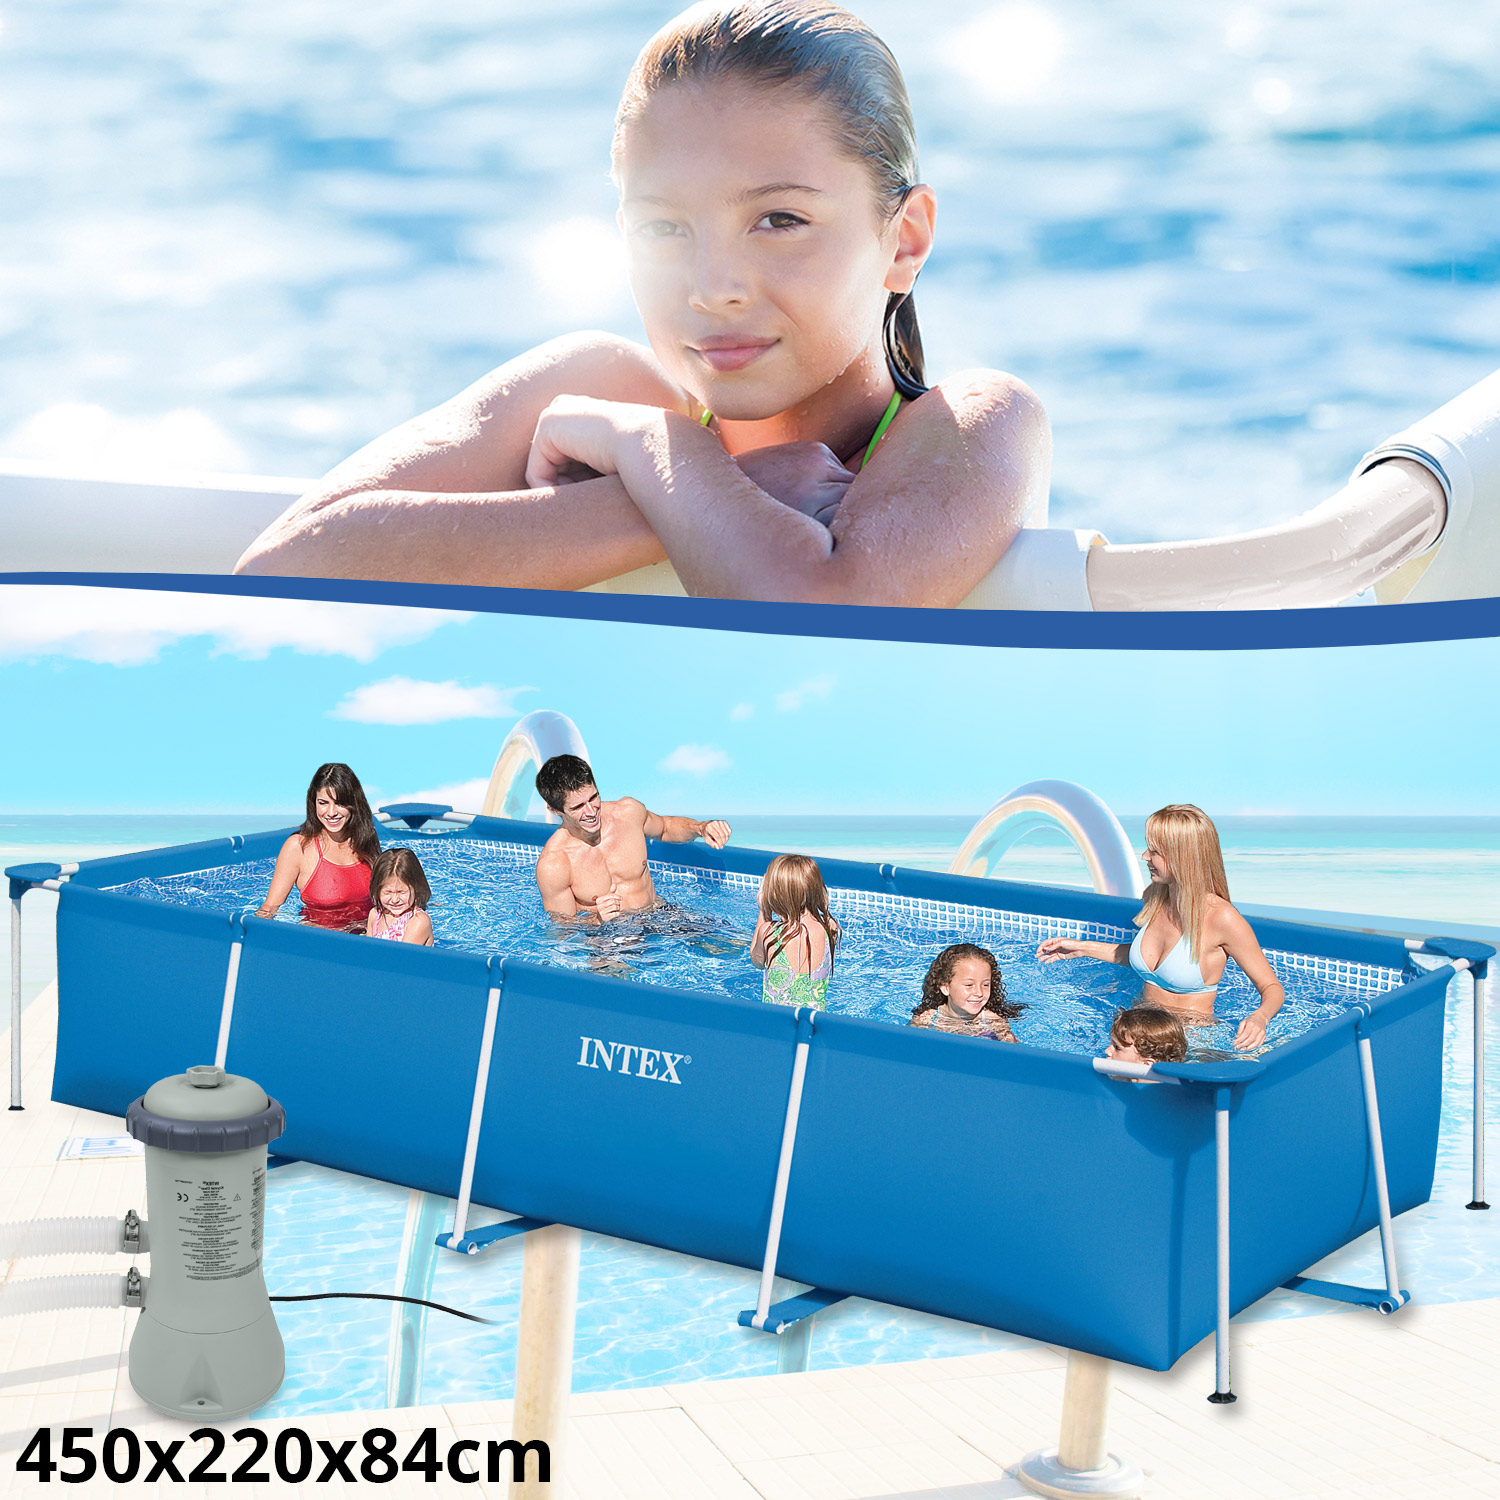 intex set family schwimmbad swimming pool schwimmbecken rechteck frame mit pumpe. Black Bedroom Furniture Sets. Home Design Ideas